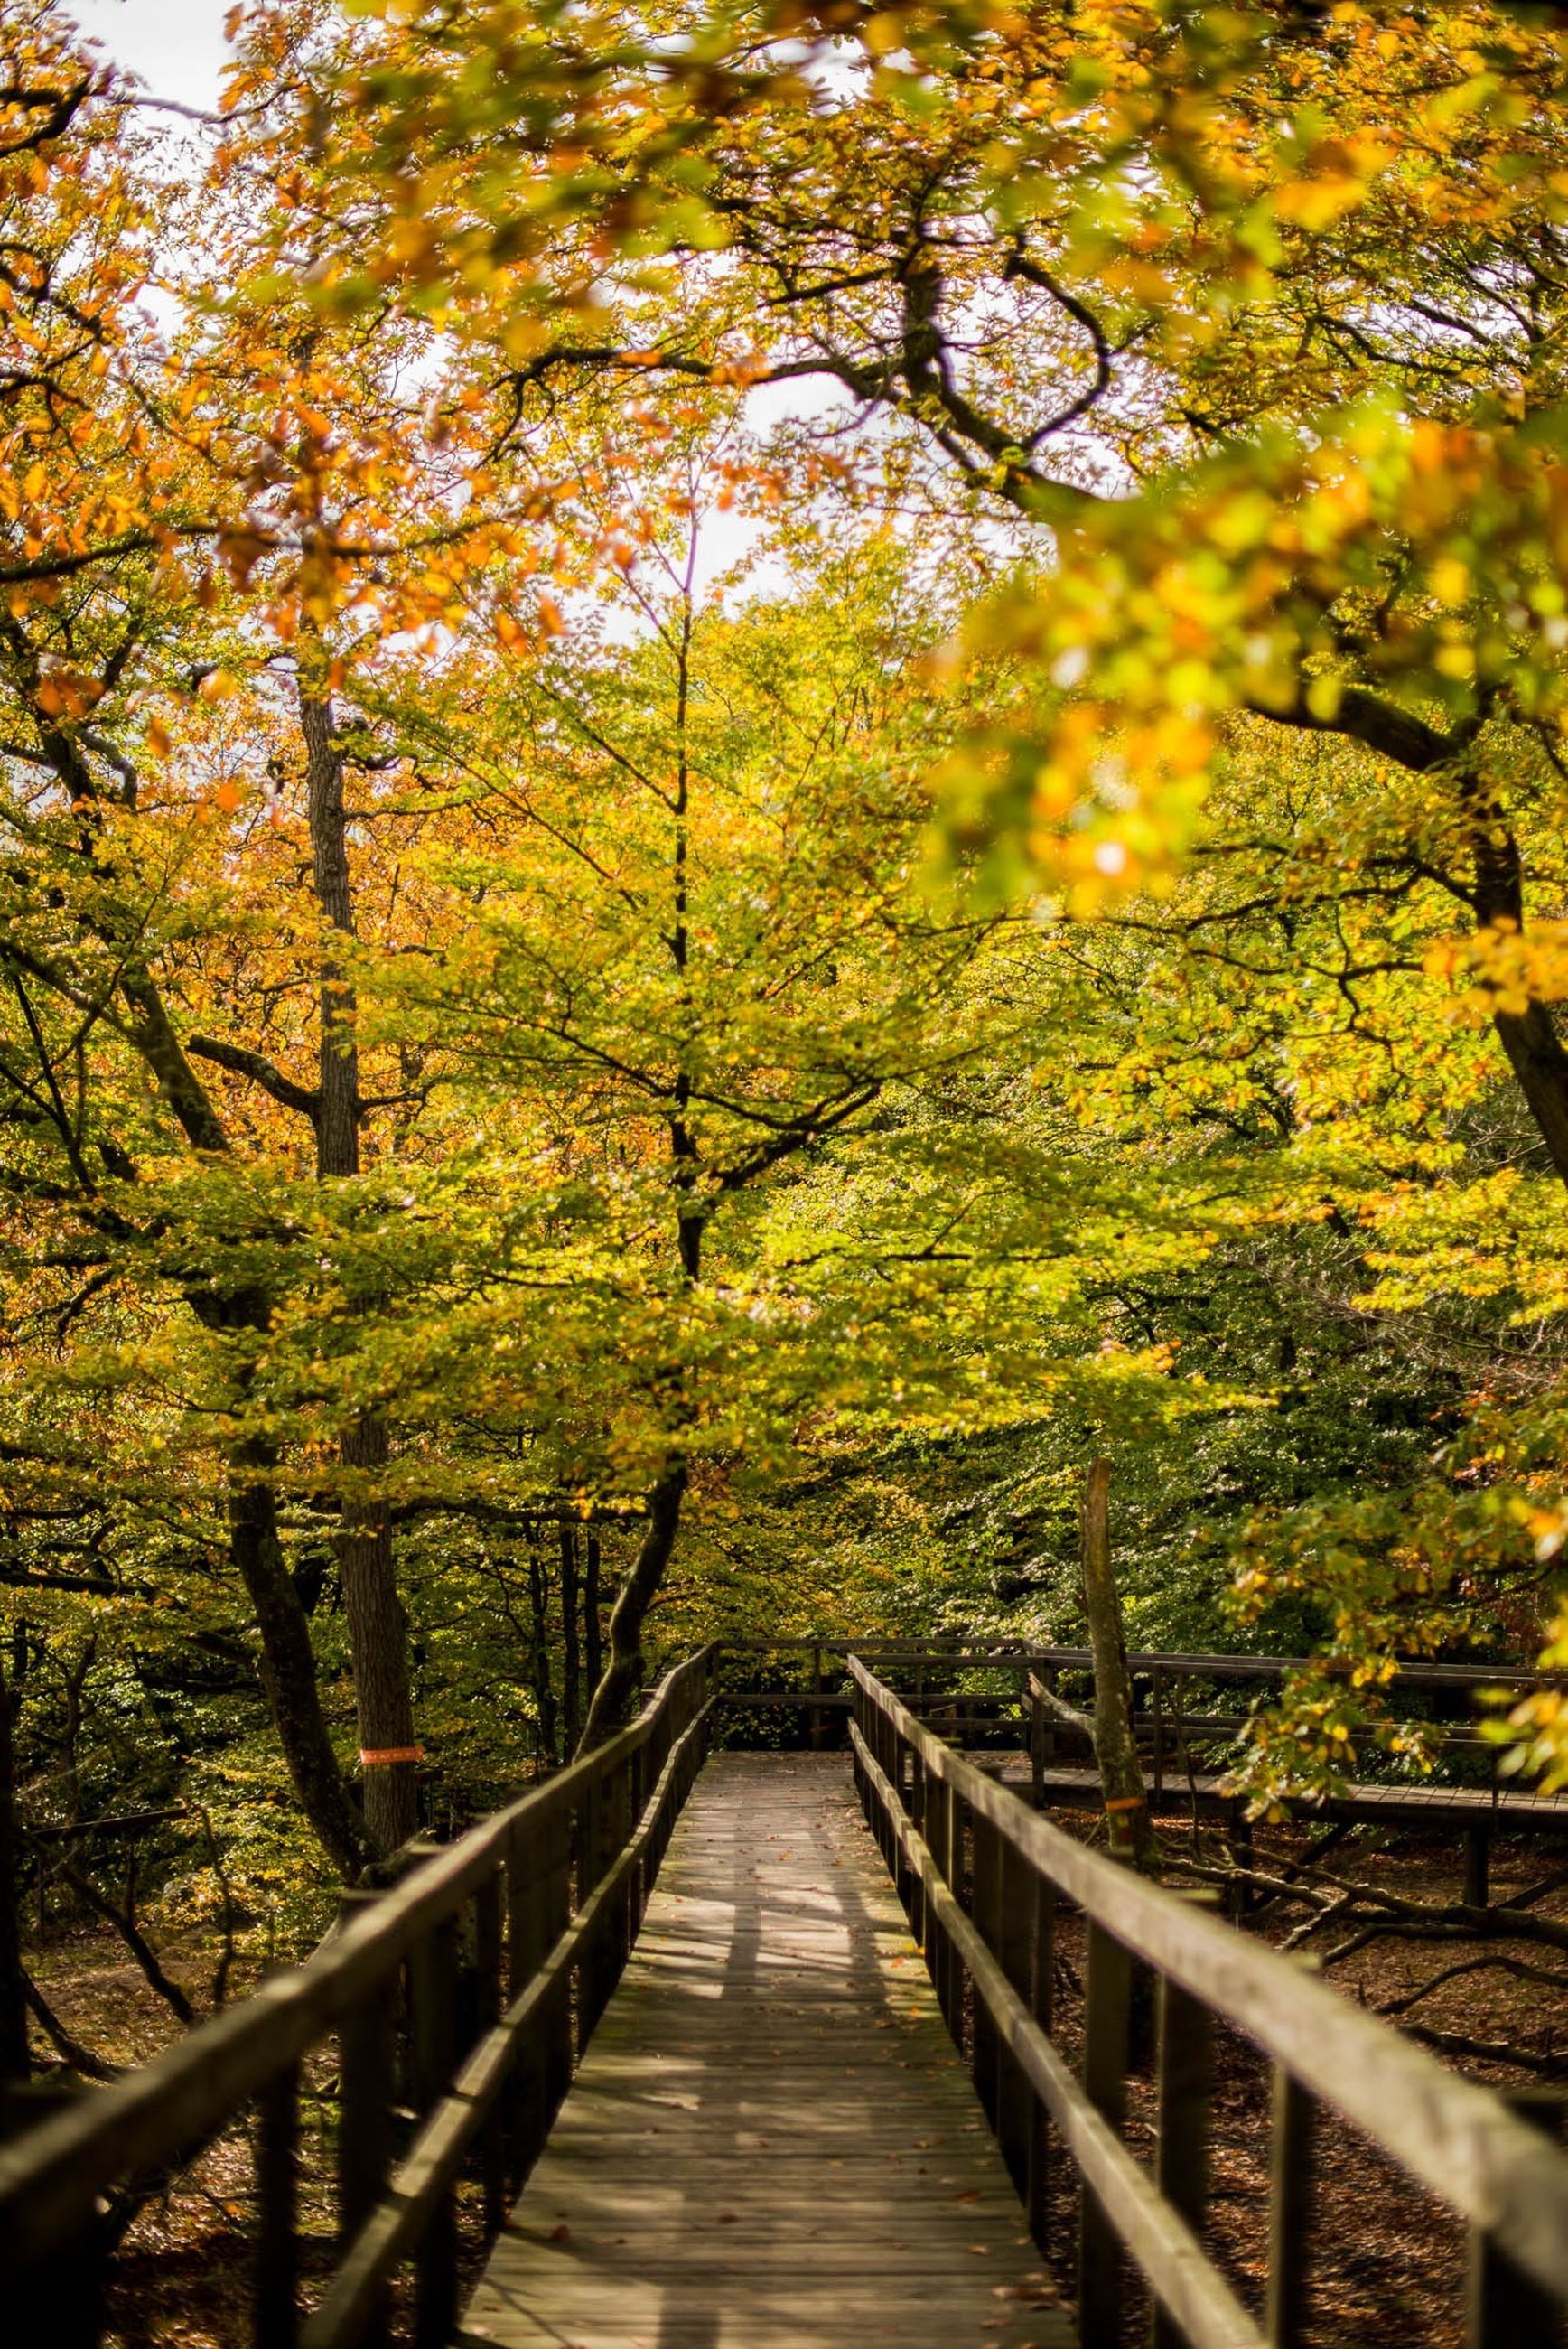 tree, railing, the way forward, footbridge, autumn, tranquility, change, nature, growth, beauty in nature, branch, tranquil scene, forest, scenics, season, diminishing perspective, connection, wood - material, yellow, bridge - man made structure